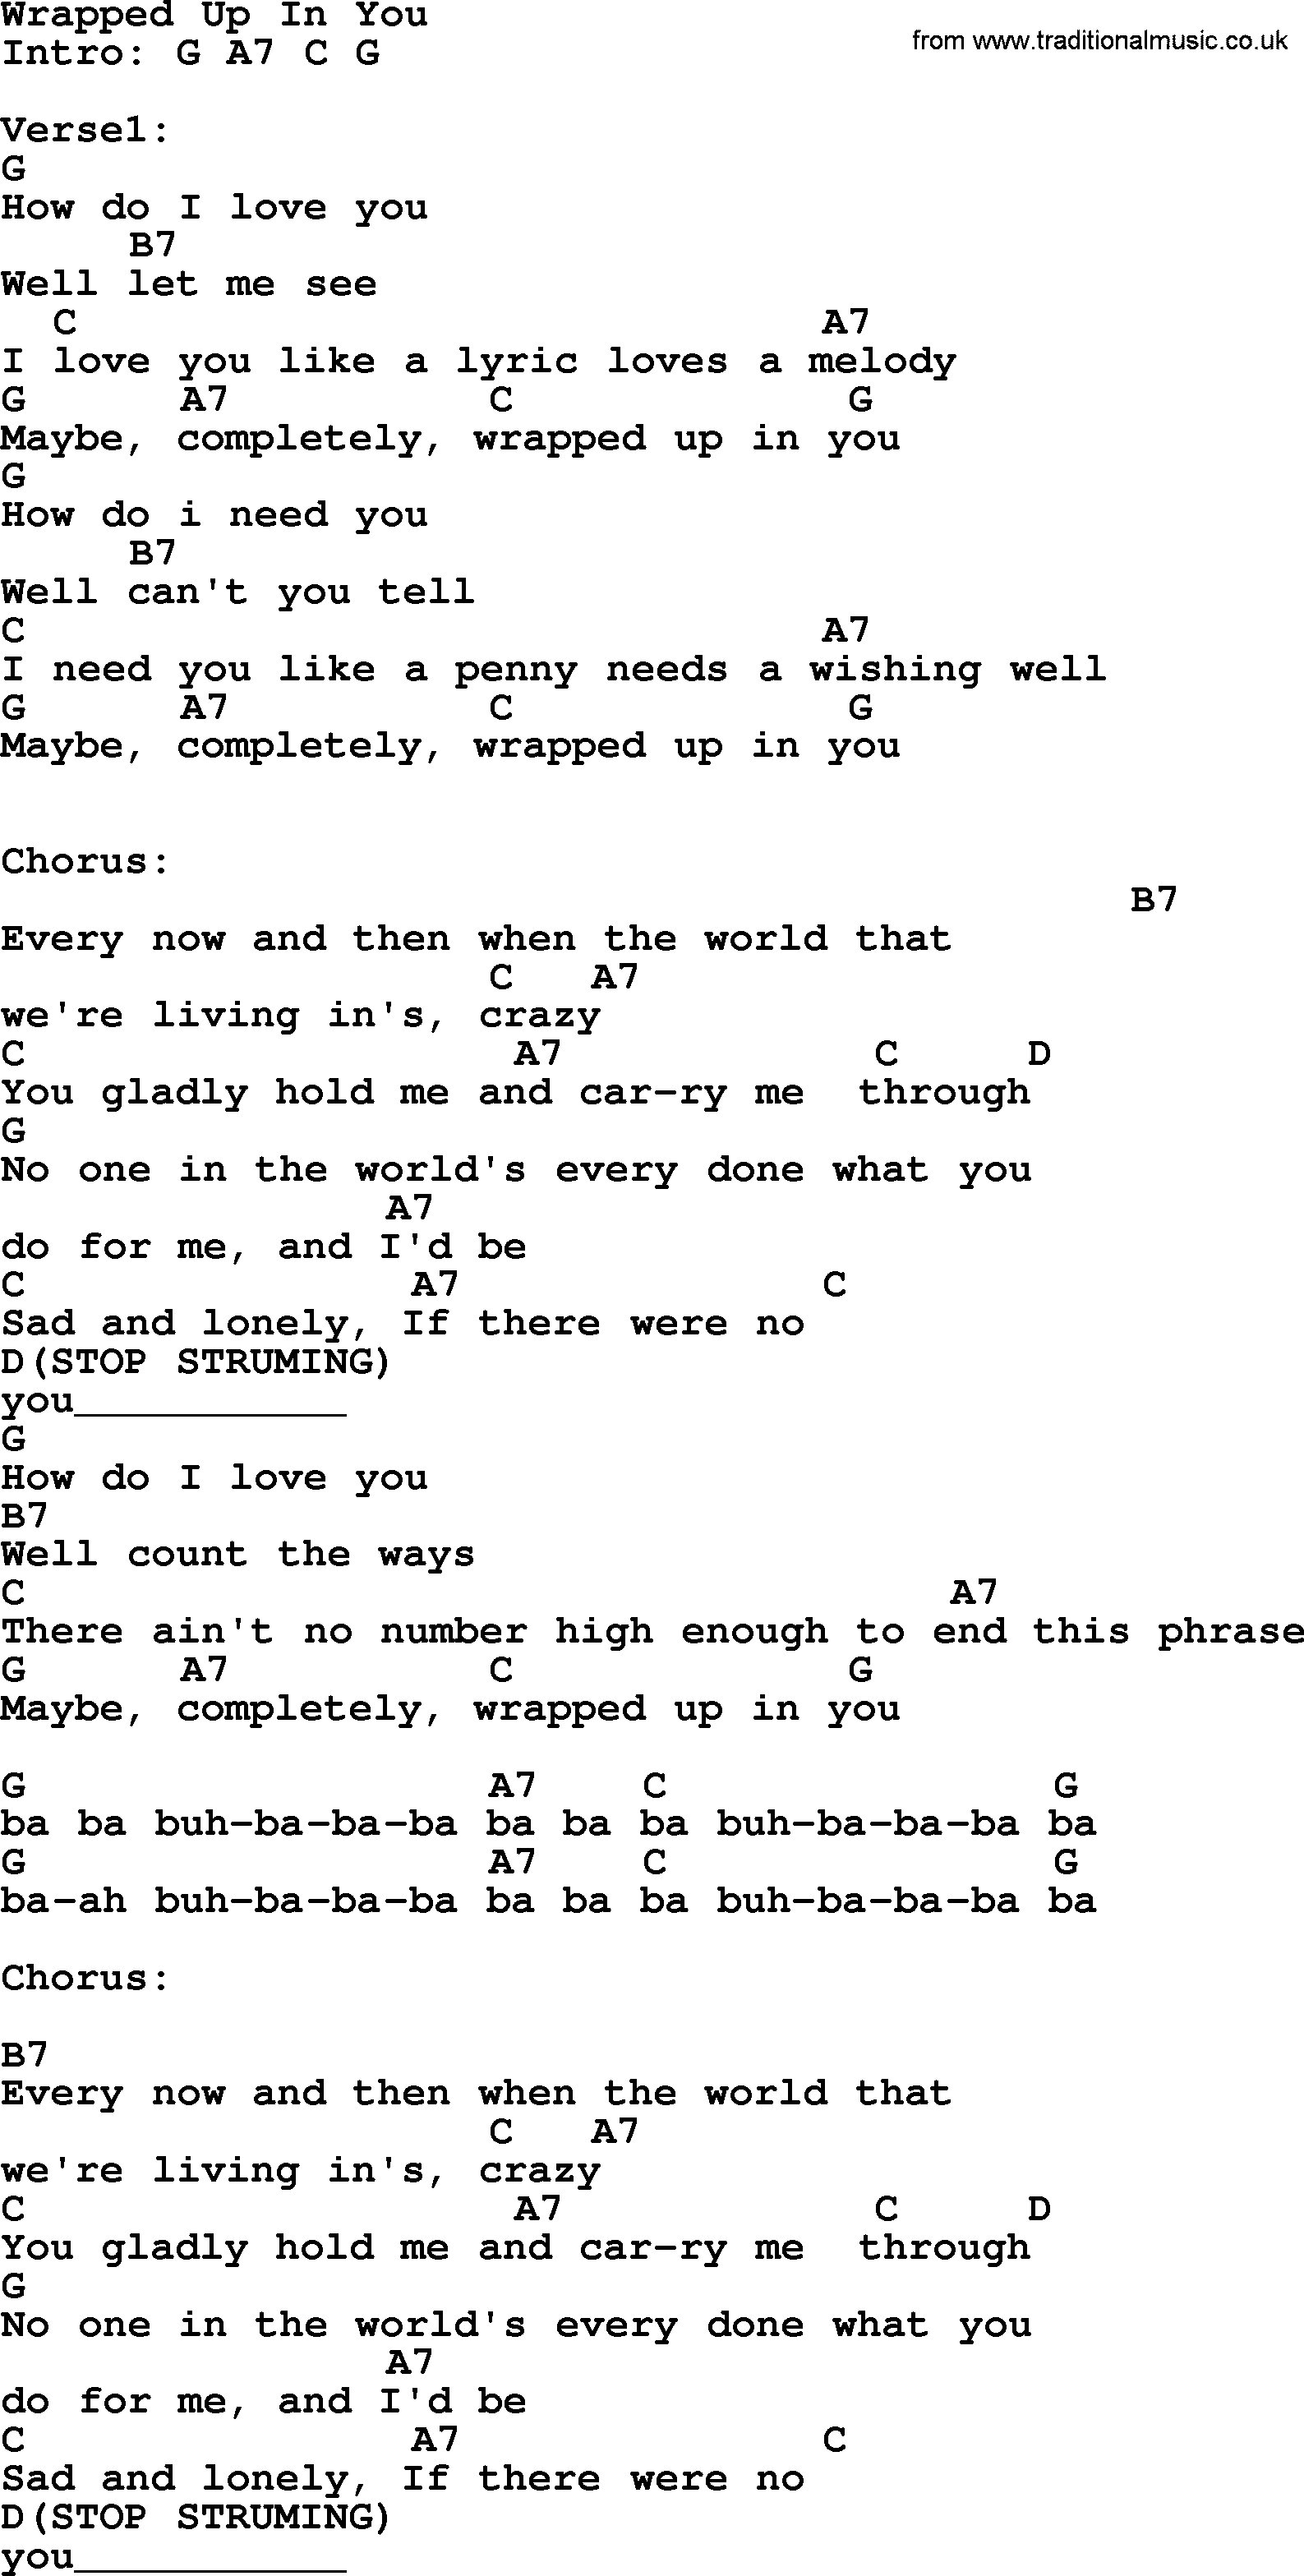 Wrapped Up In You By Garth Brooks Lyrics And Chords Garth